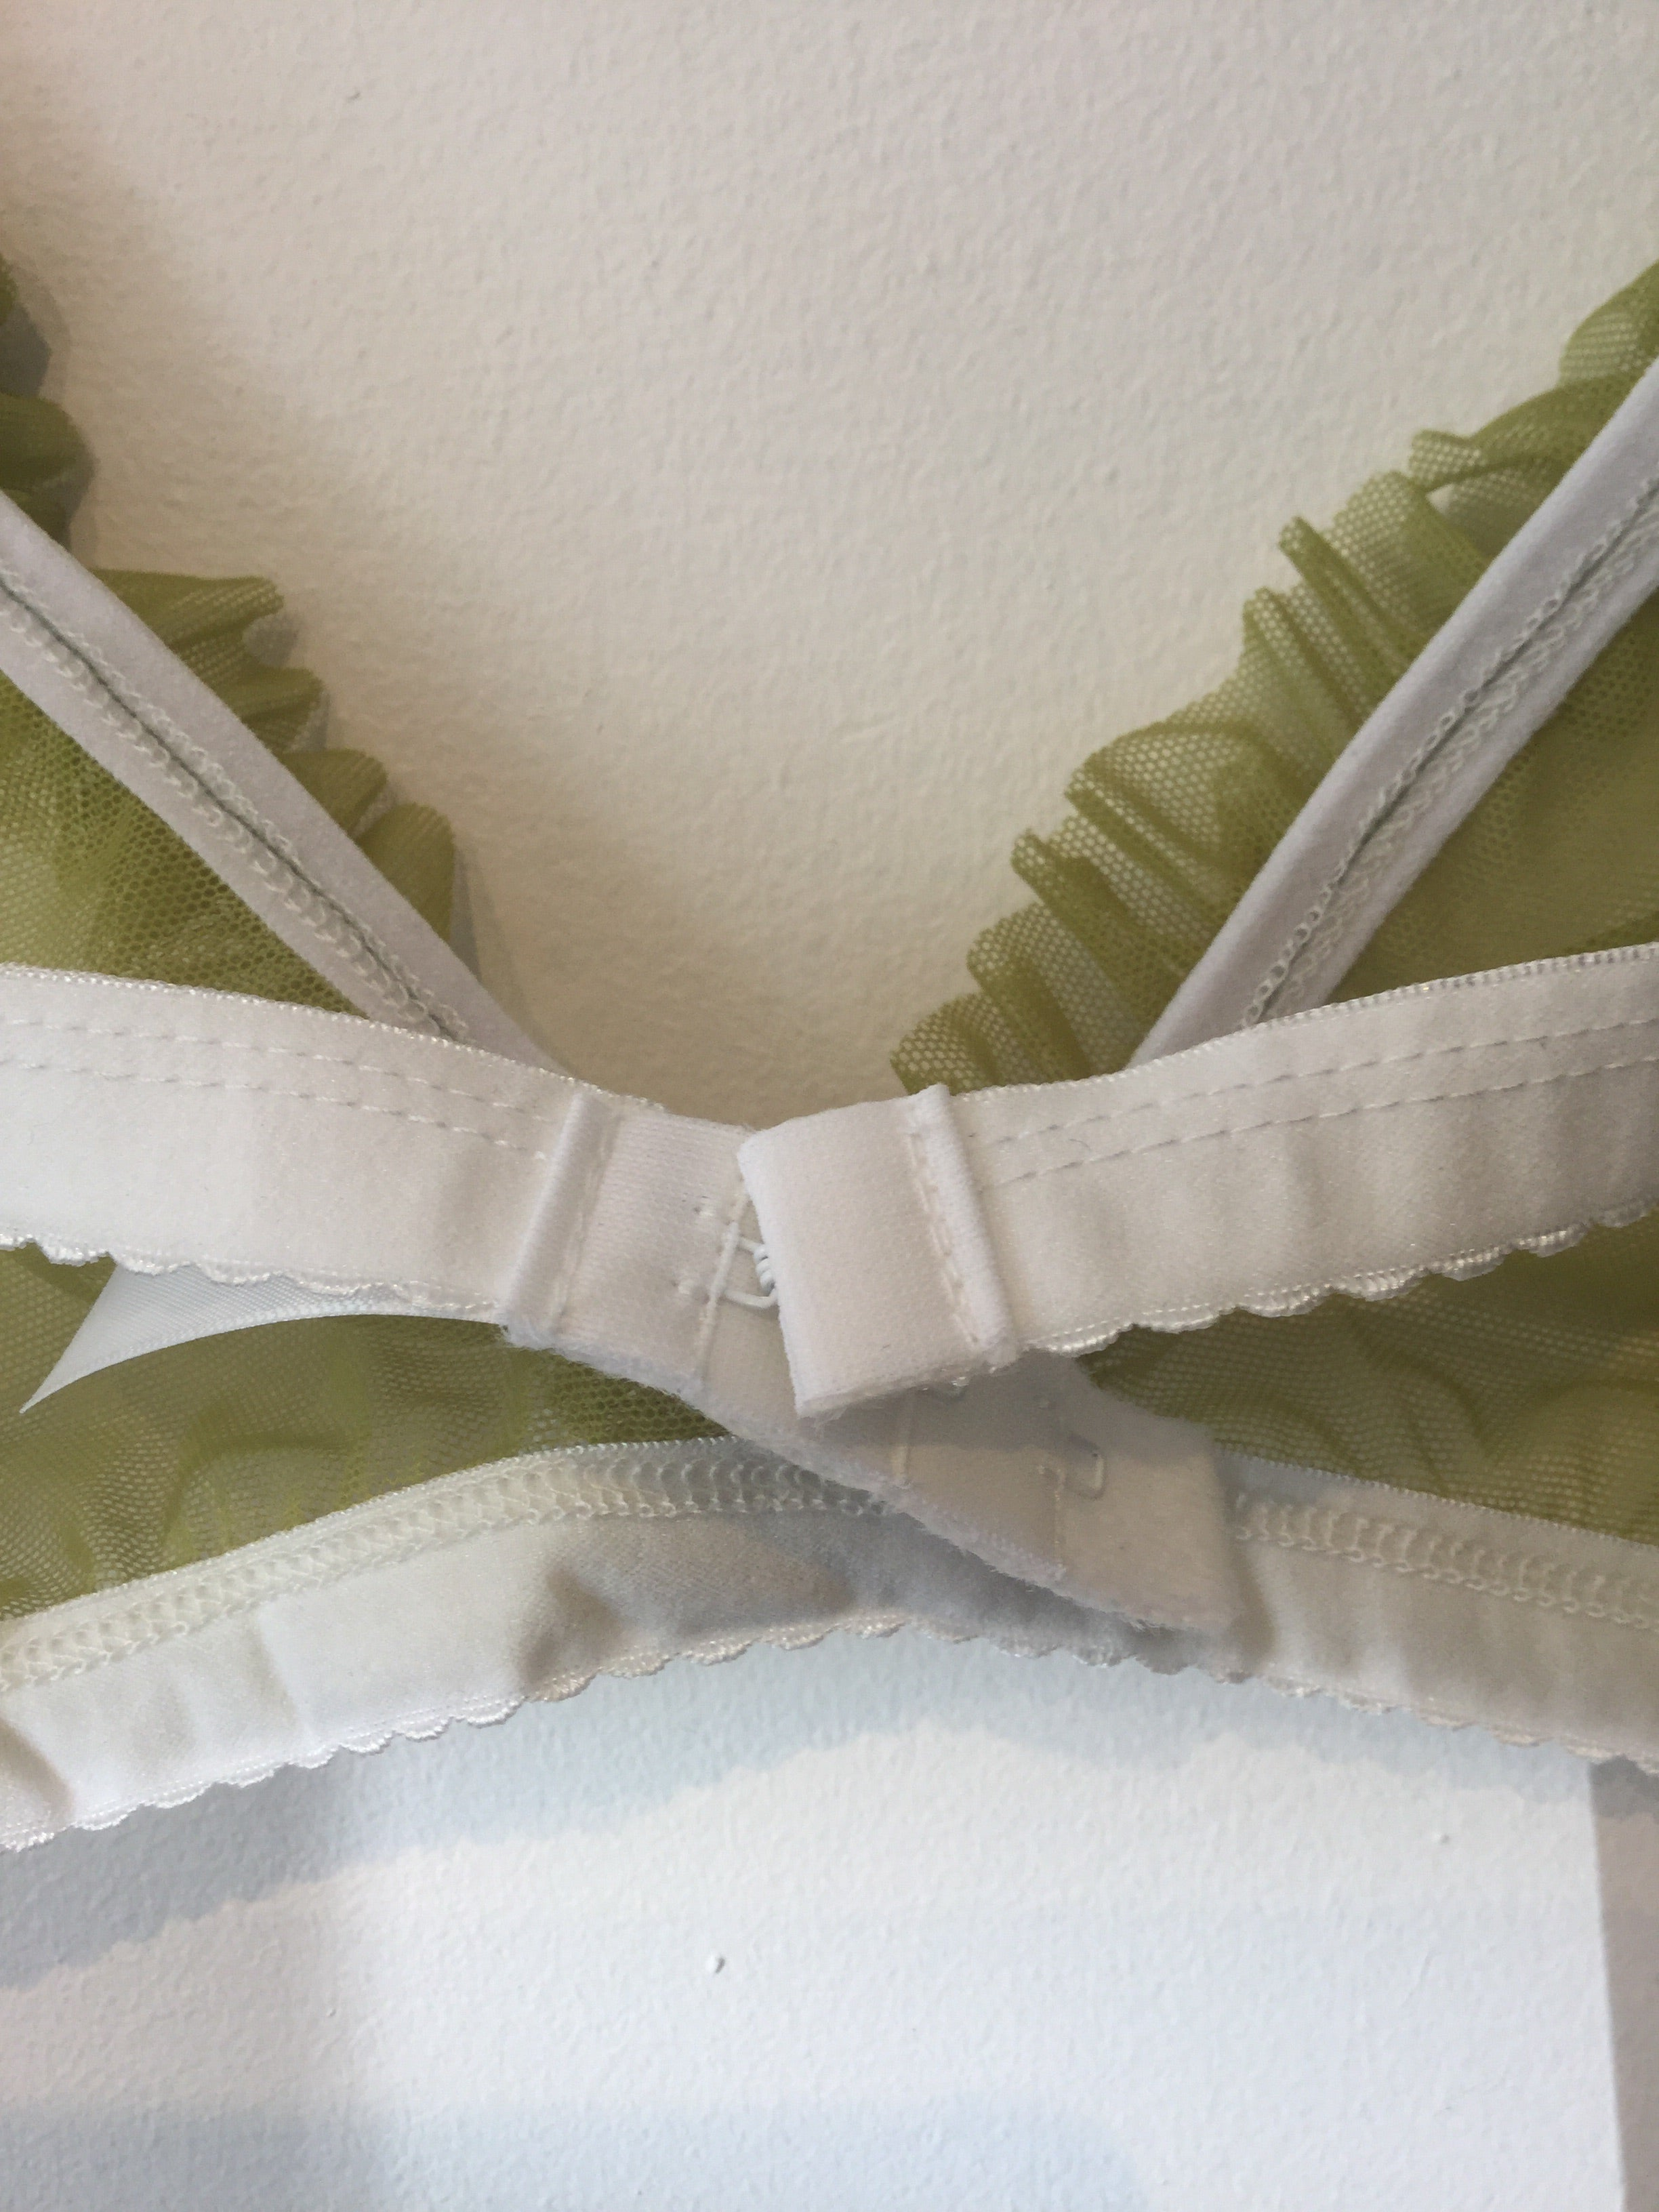 WLL for Gigi: Juicy Pear Ruffle Bralette - only L left!